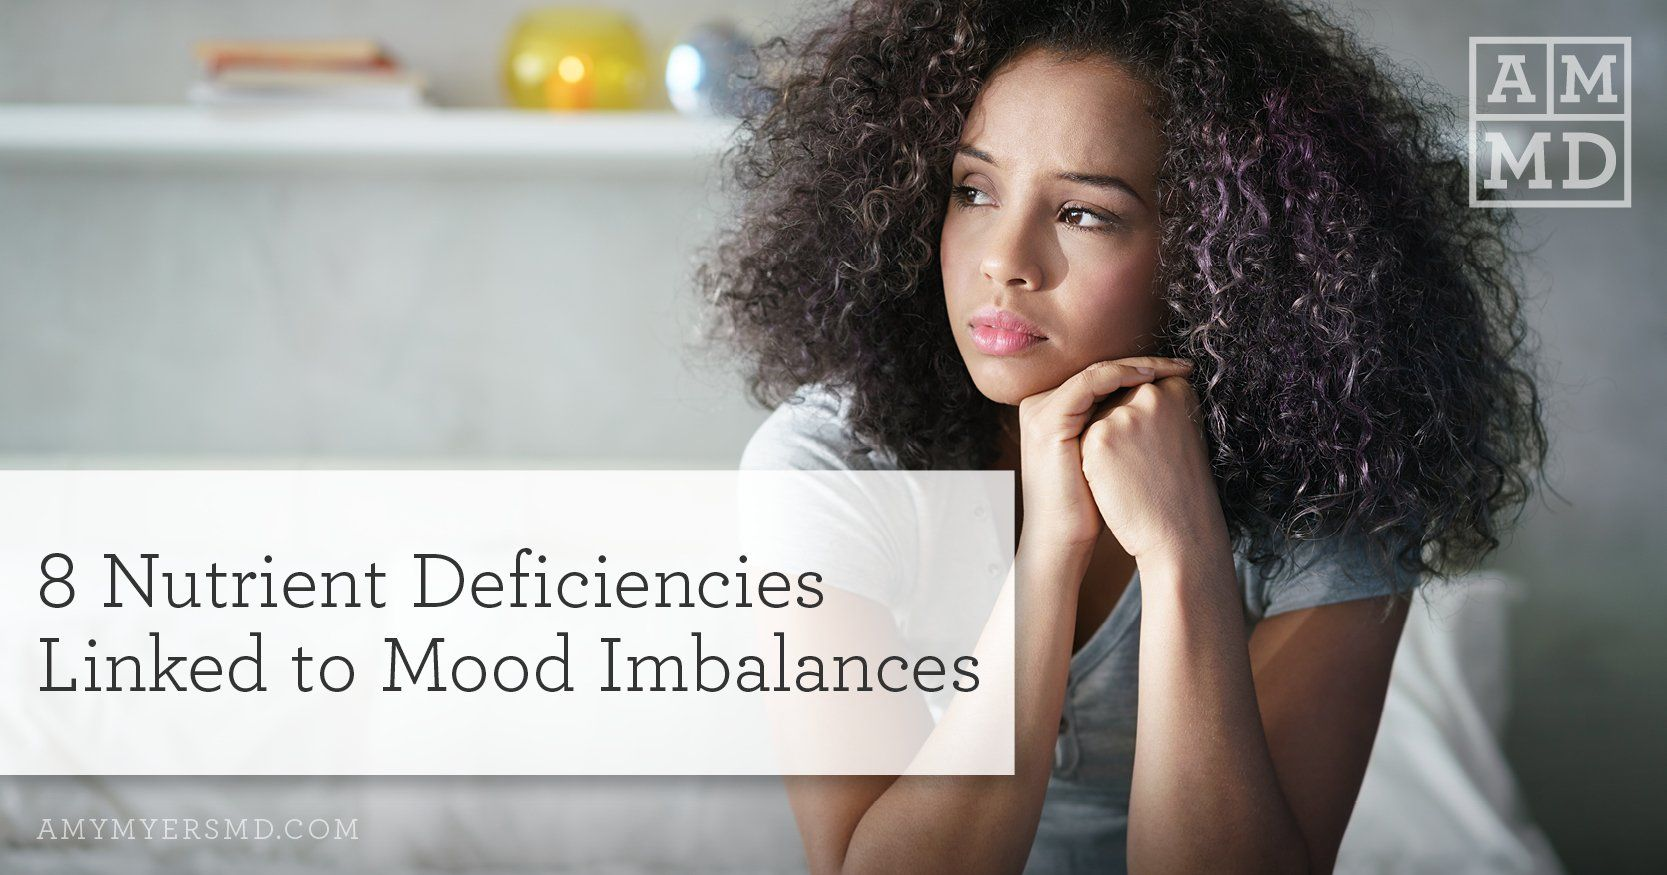 8 Nutrient Deficiencies Linked to Mood Imbalances in 2020